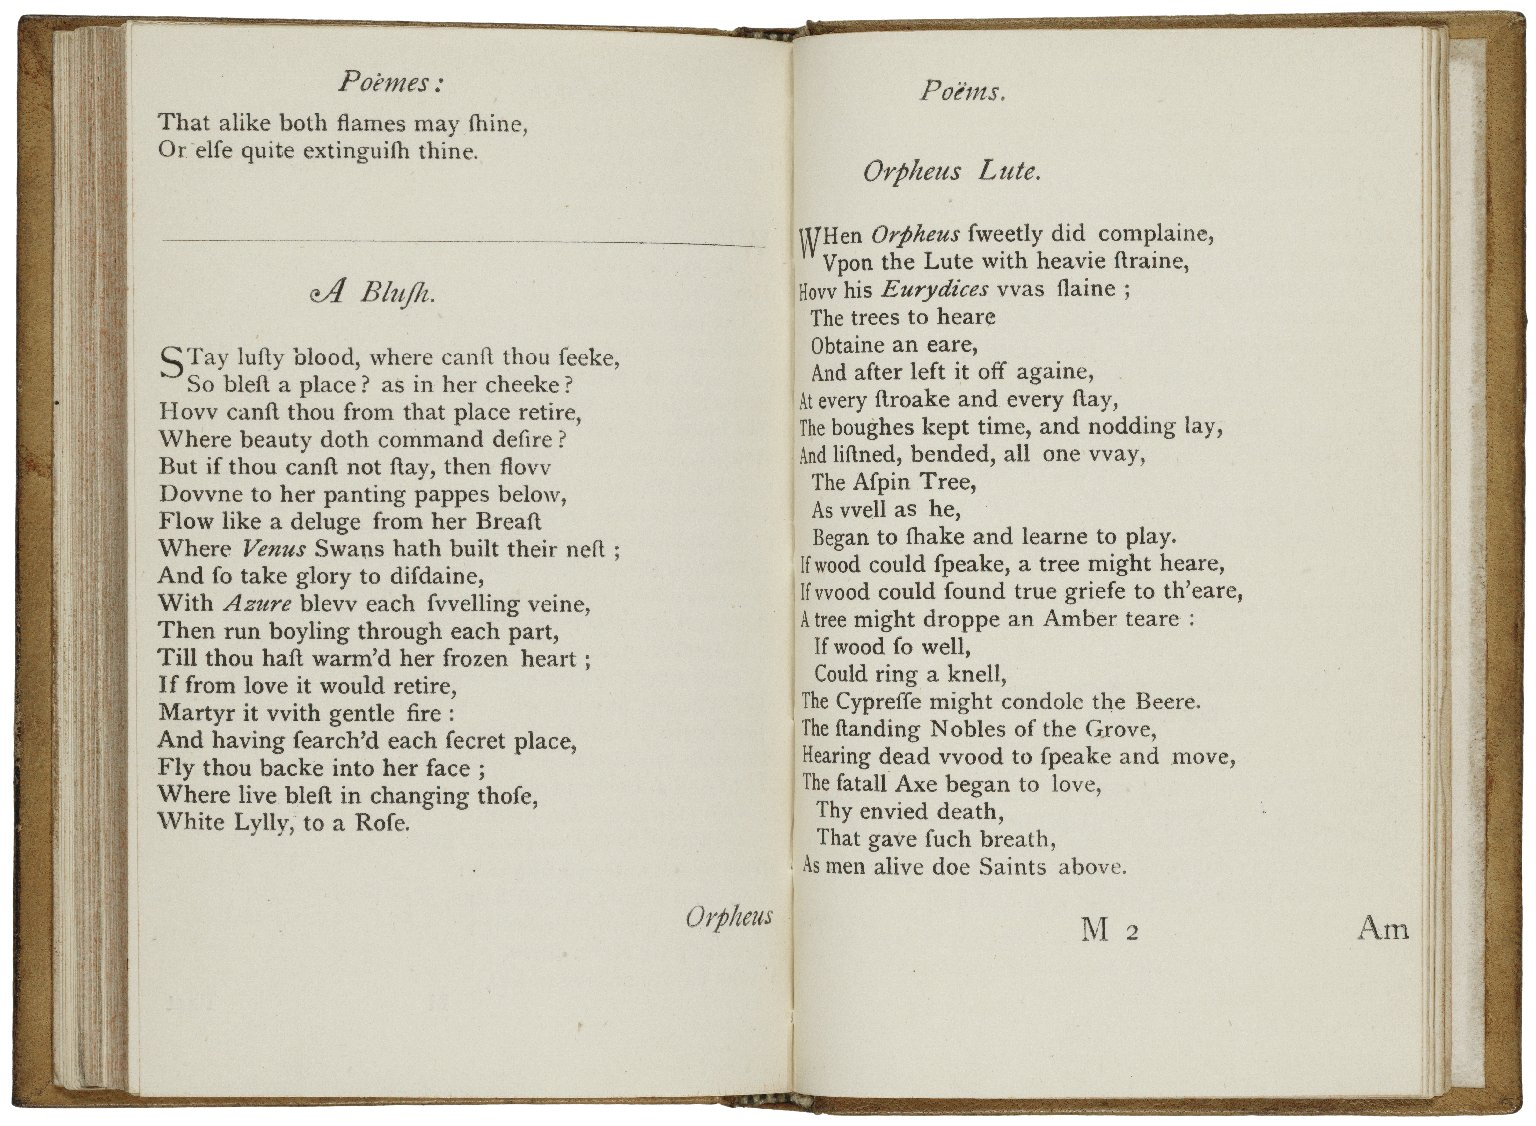 [Poems. 1640] Poems / vvritten by Wil. Shake-speare. Gent.